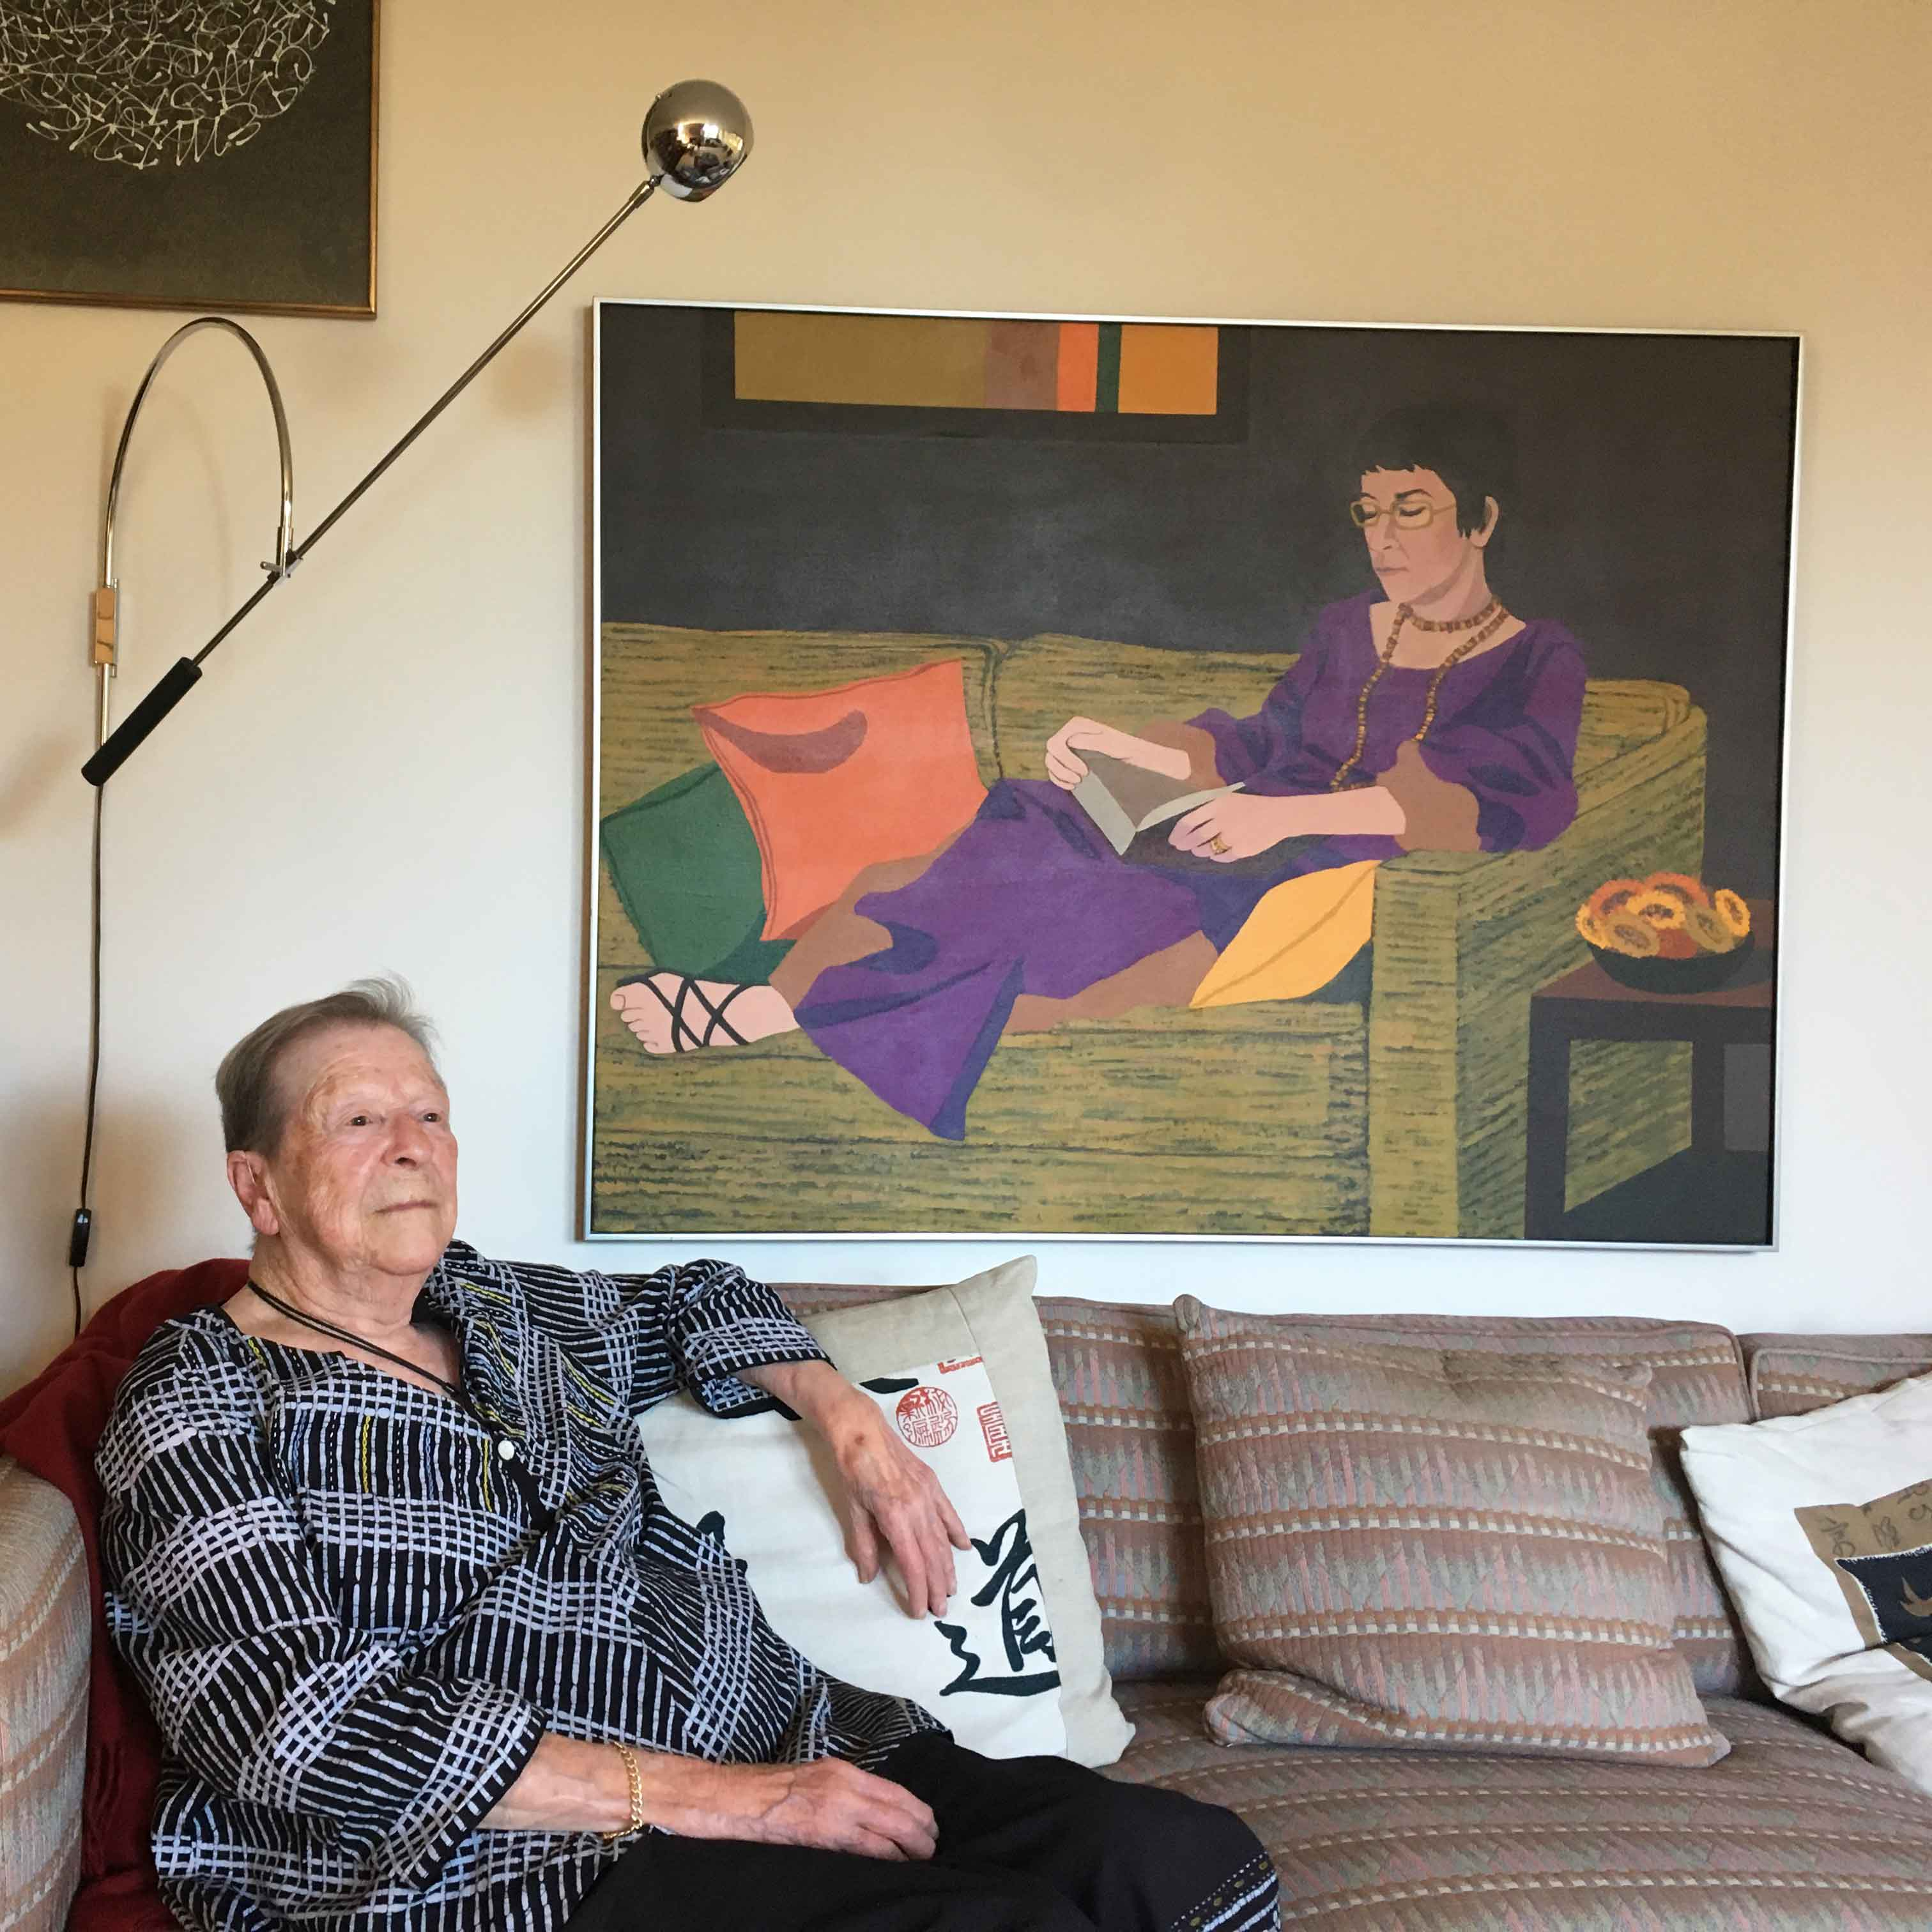 Professor Angela Little sits on a couch in front of a painting